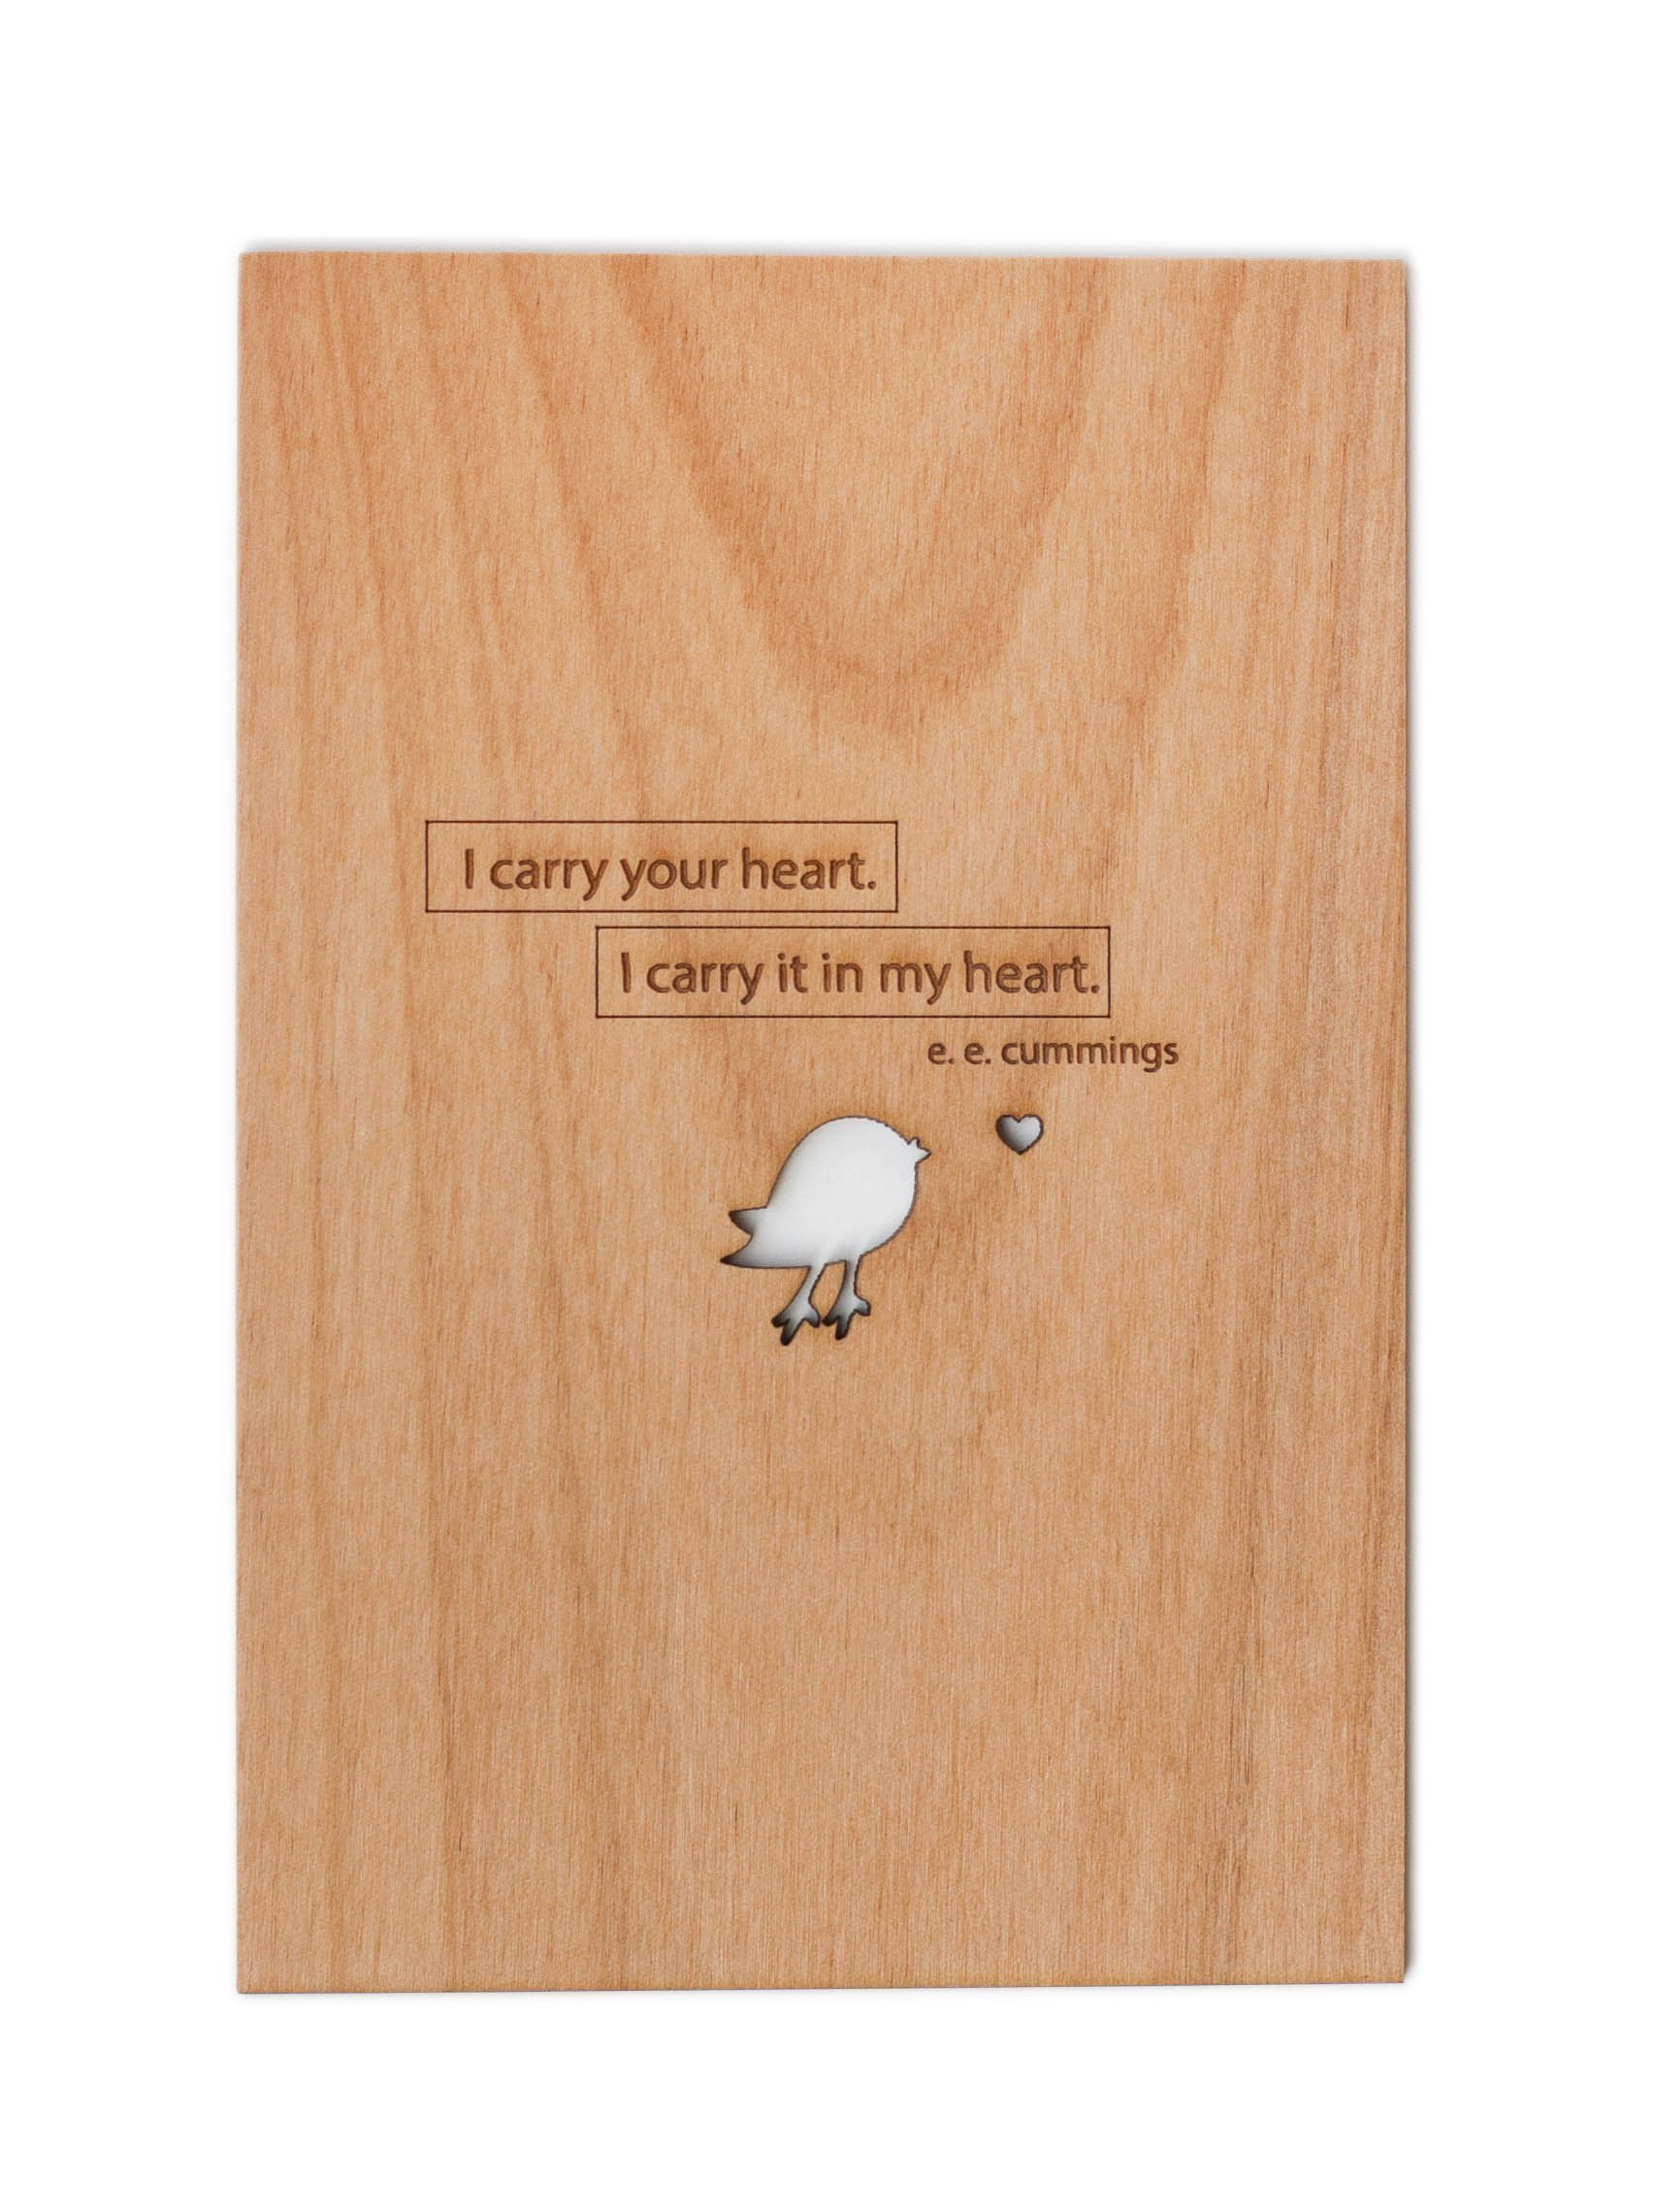 I Carry Your Heart E.E. Cummings Wood Card (Love / 5 Year Anniversary / Boyfriend or Girlfriend / Valentine's Day)